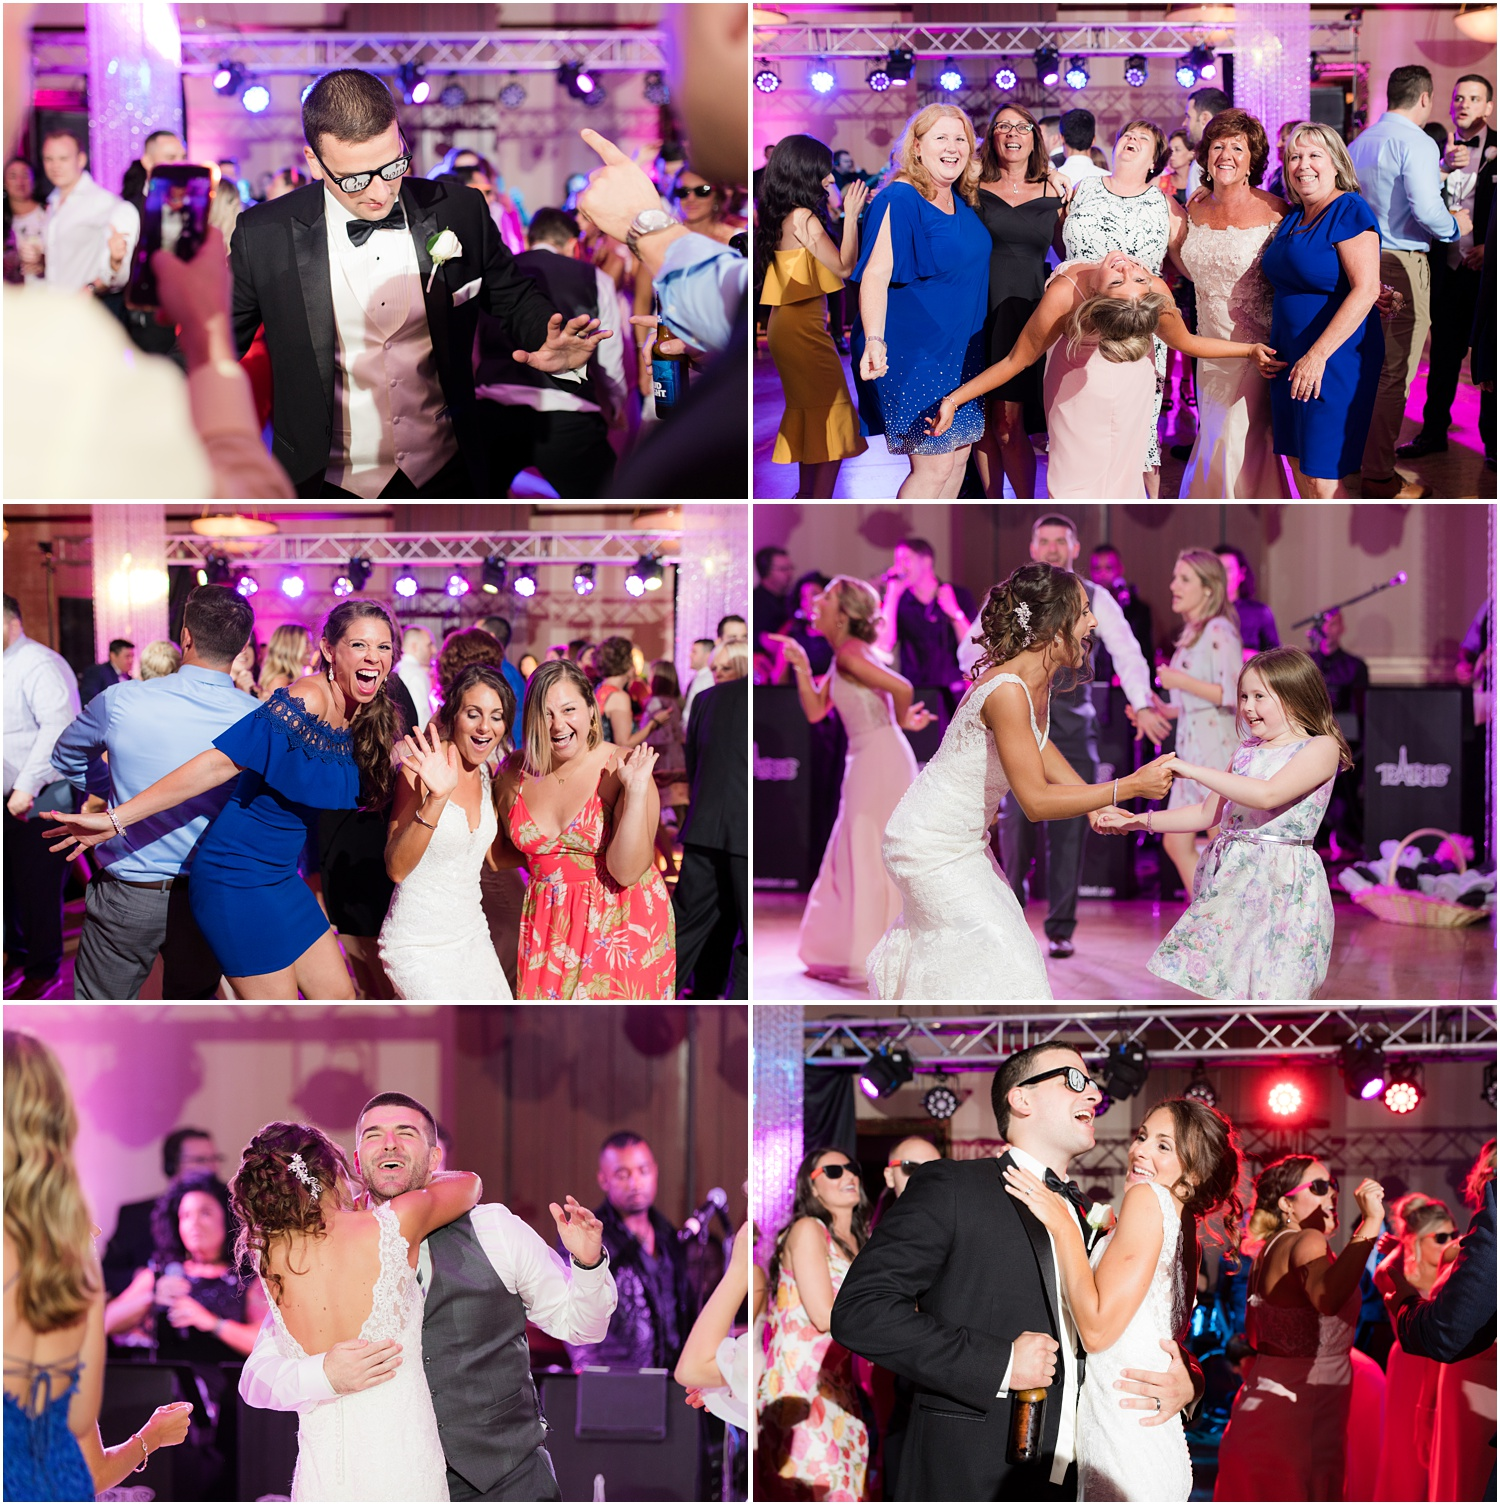 Fun and wild wedding reception dancing at South Gate Manor in Freehold.